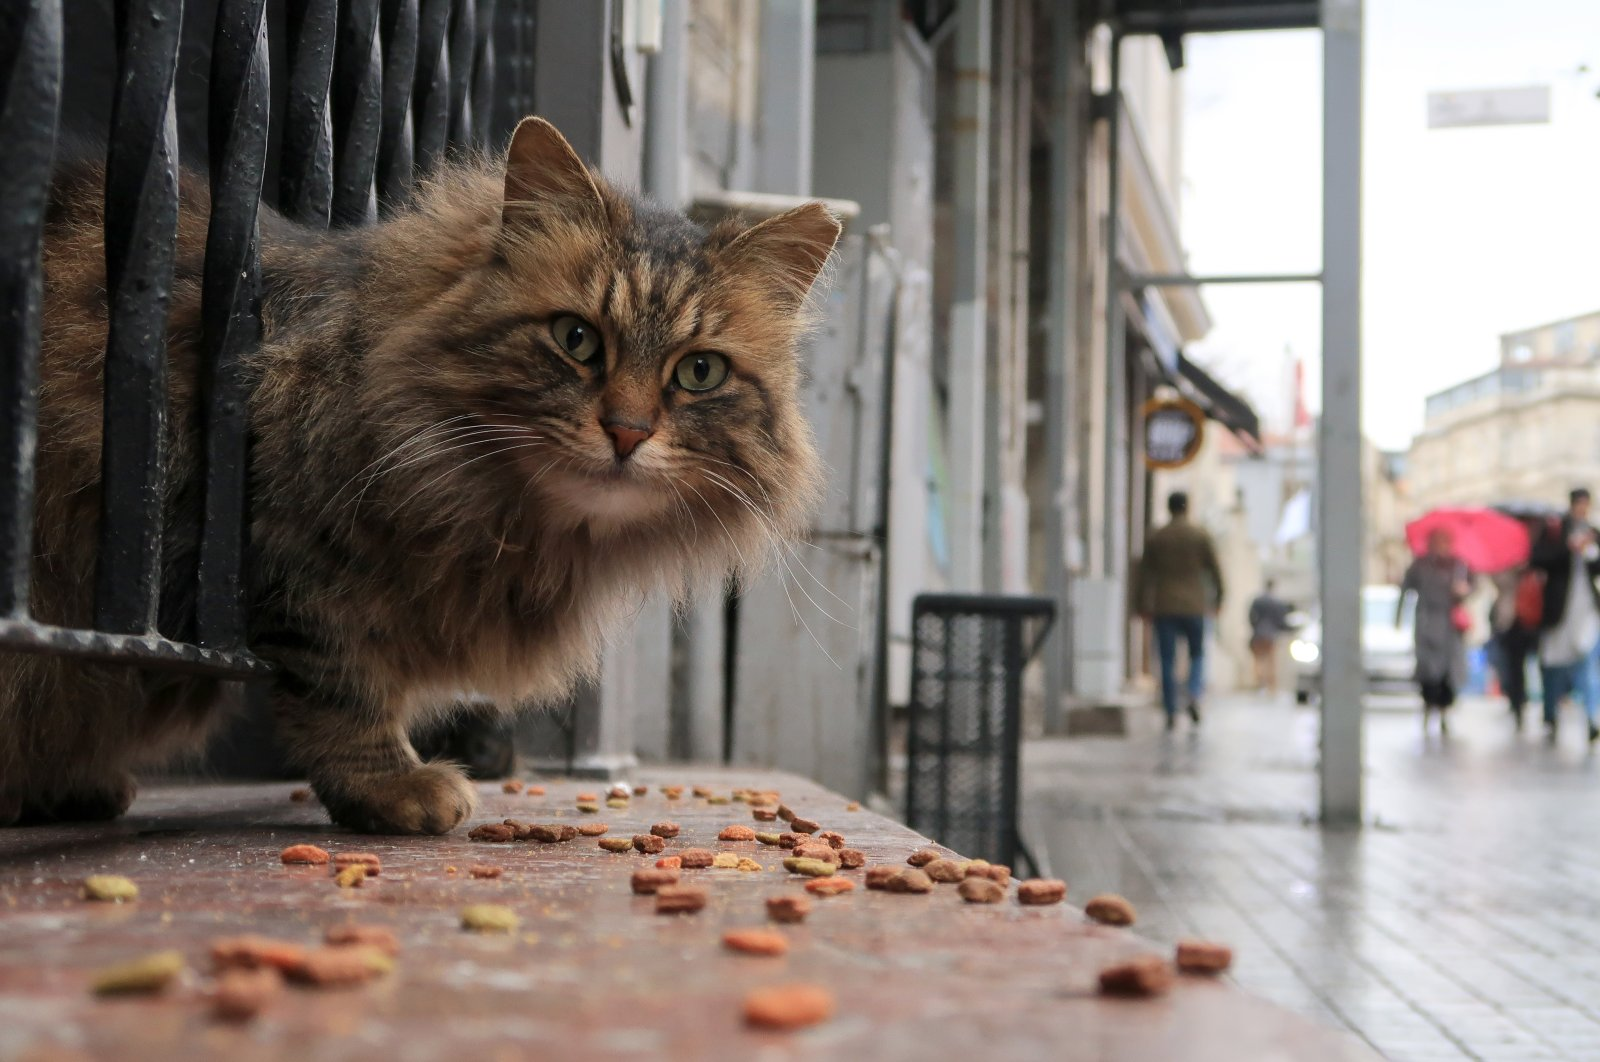 A stray cat eats on a doorstep in Istanbul, Turkey, March 14, 2017. (Getty Images File Photo)